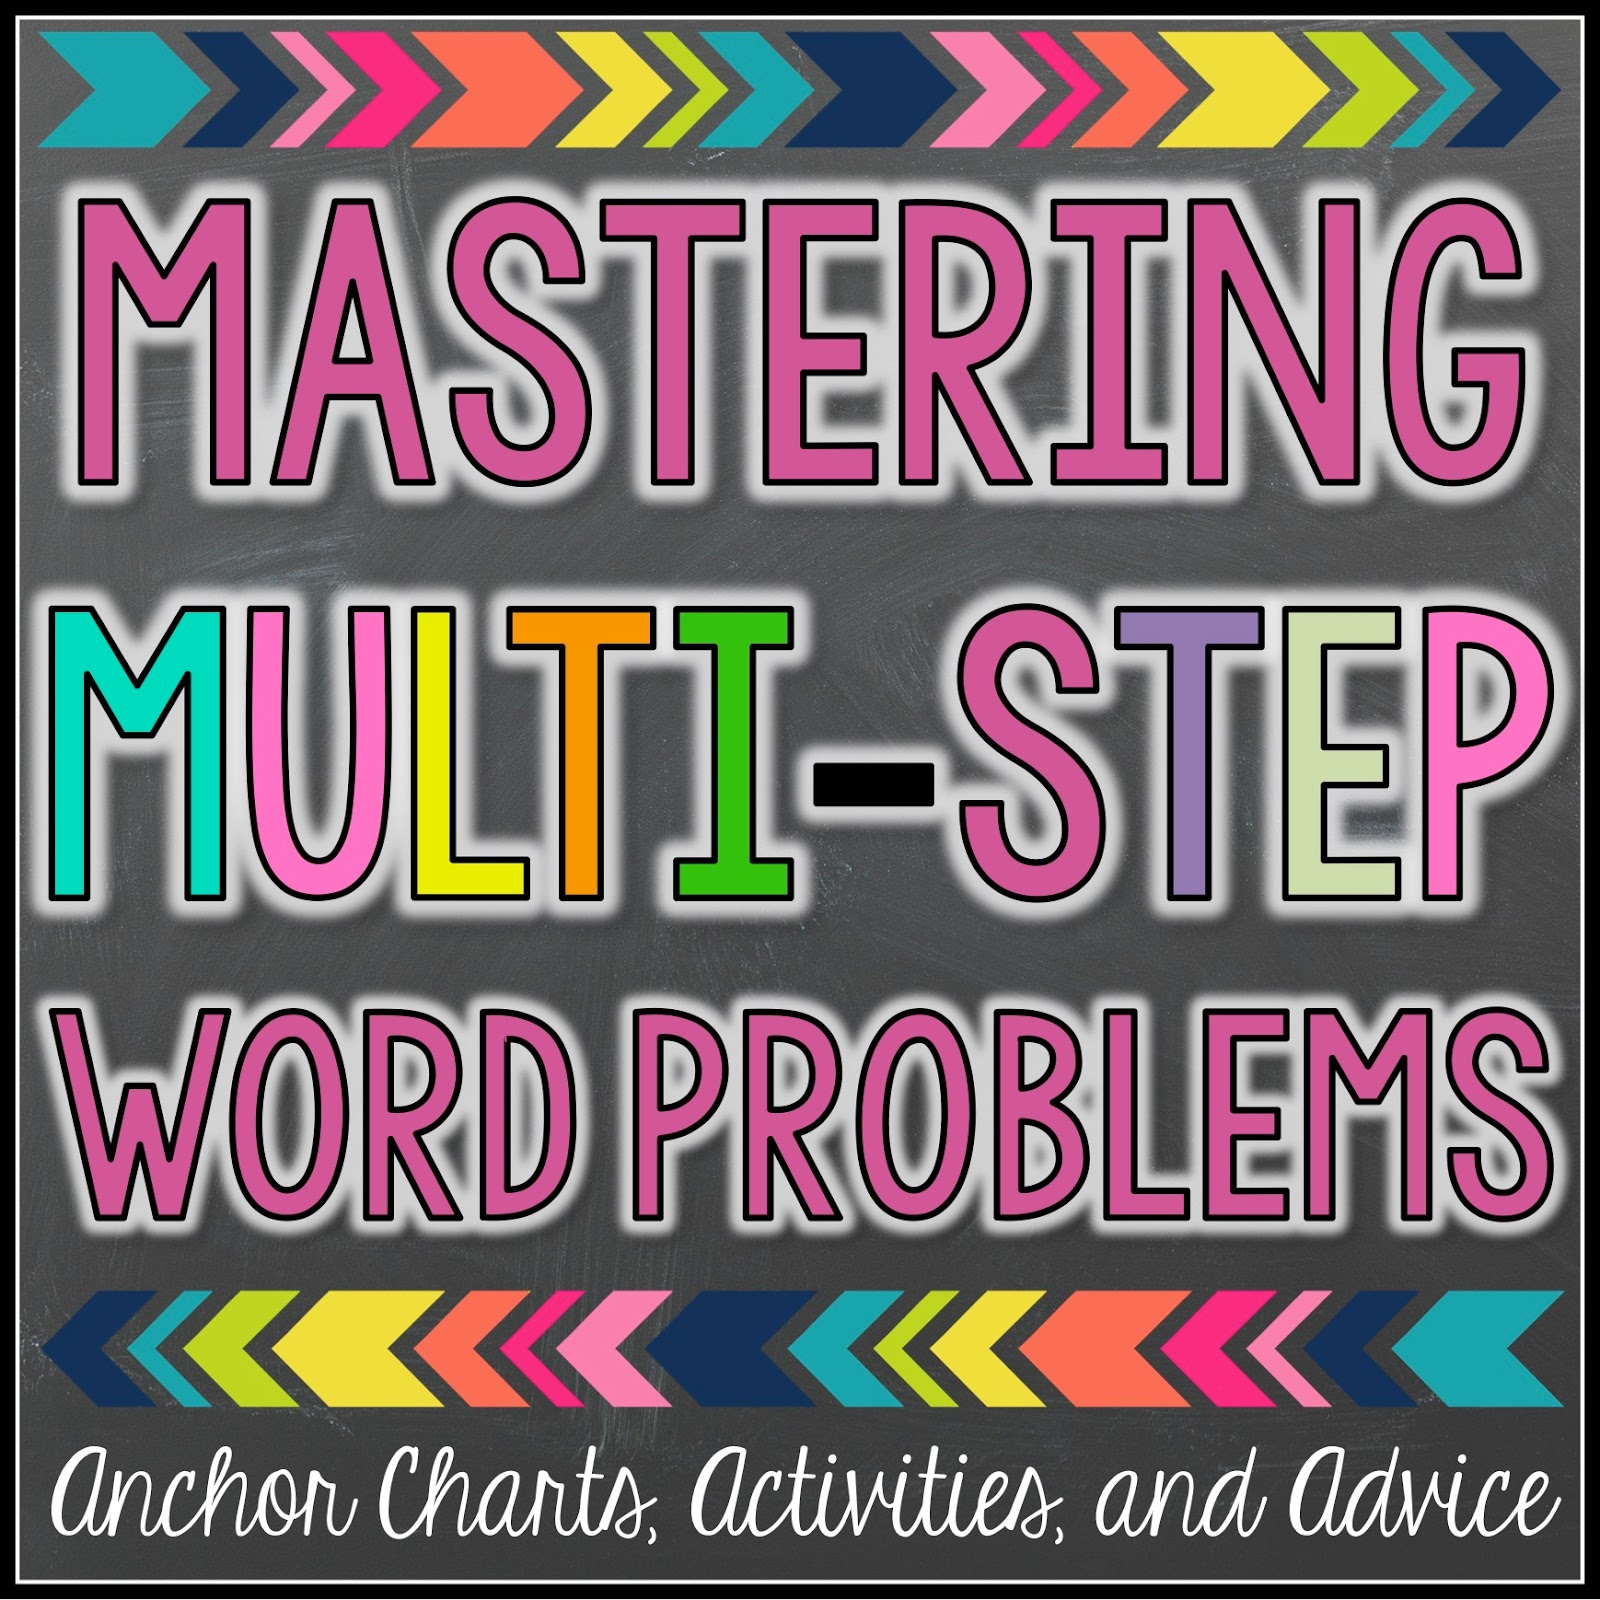 hight resolution of Multi-Step Word Problems Mastery - Teaching with a Mountain View